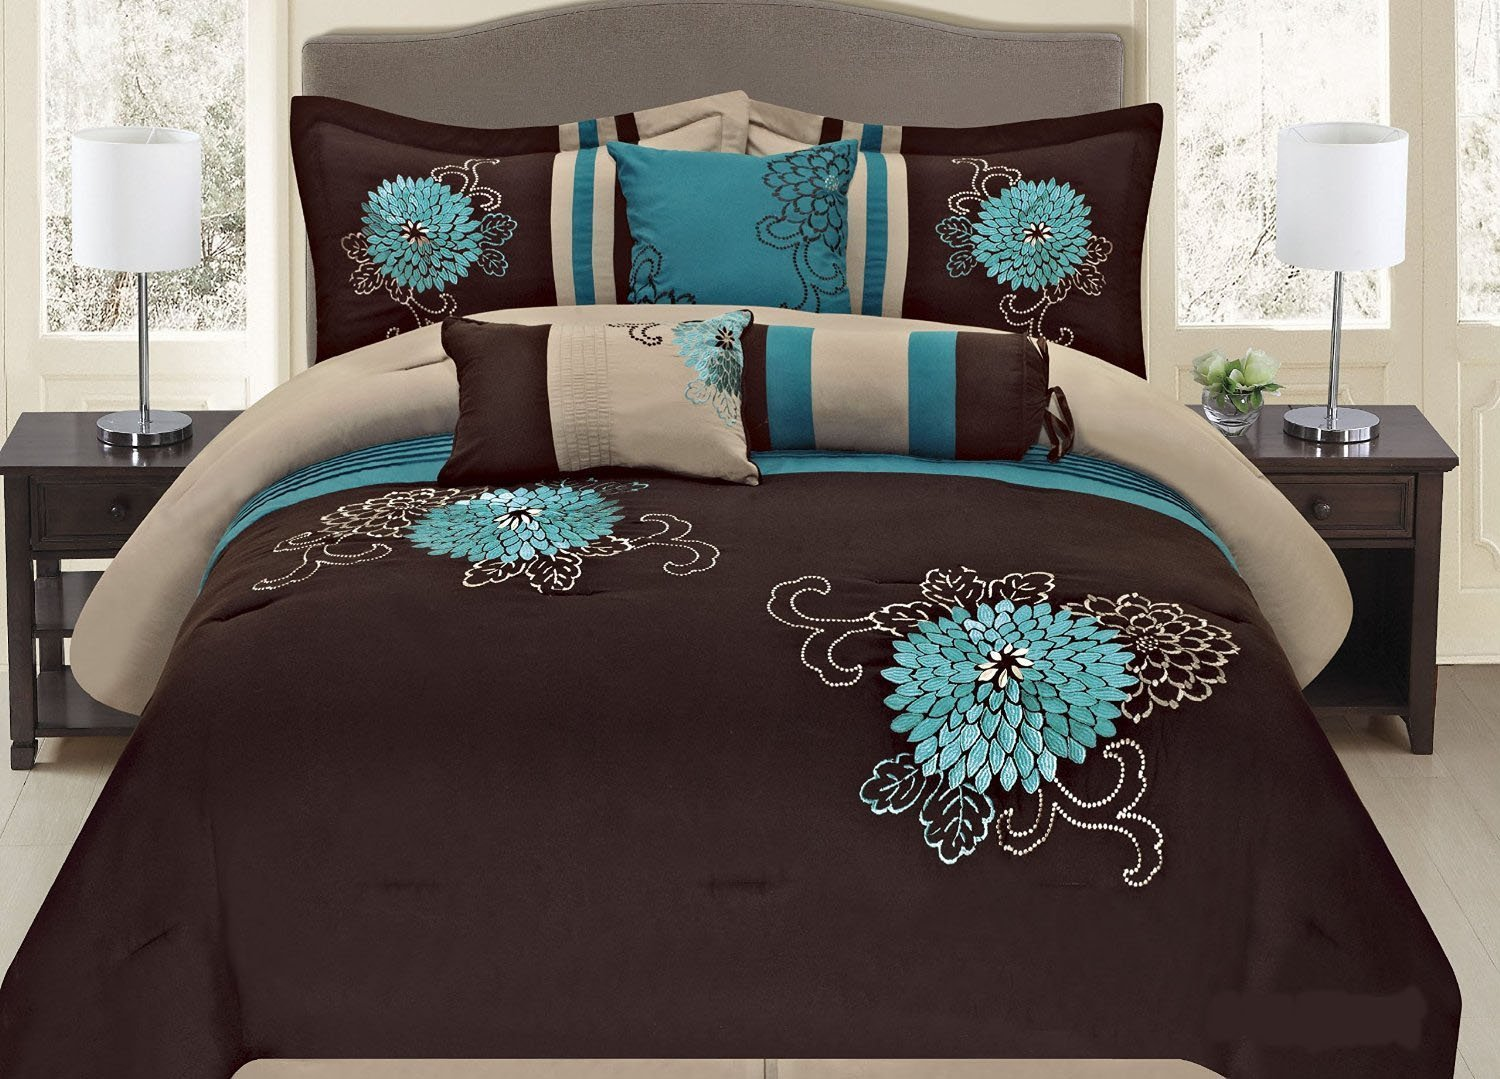 Cheap Turquoise Comforter Set, find Turquoise Comforter Set deals on ...